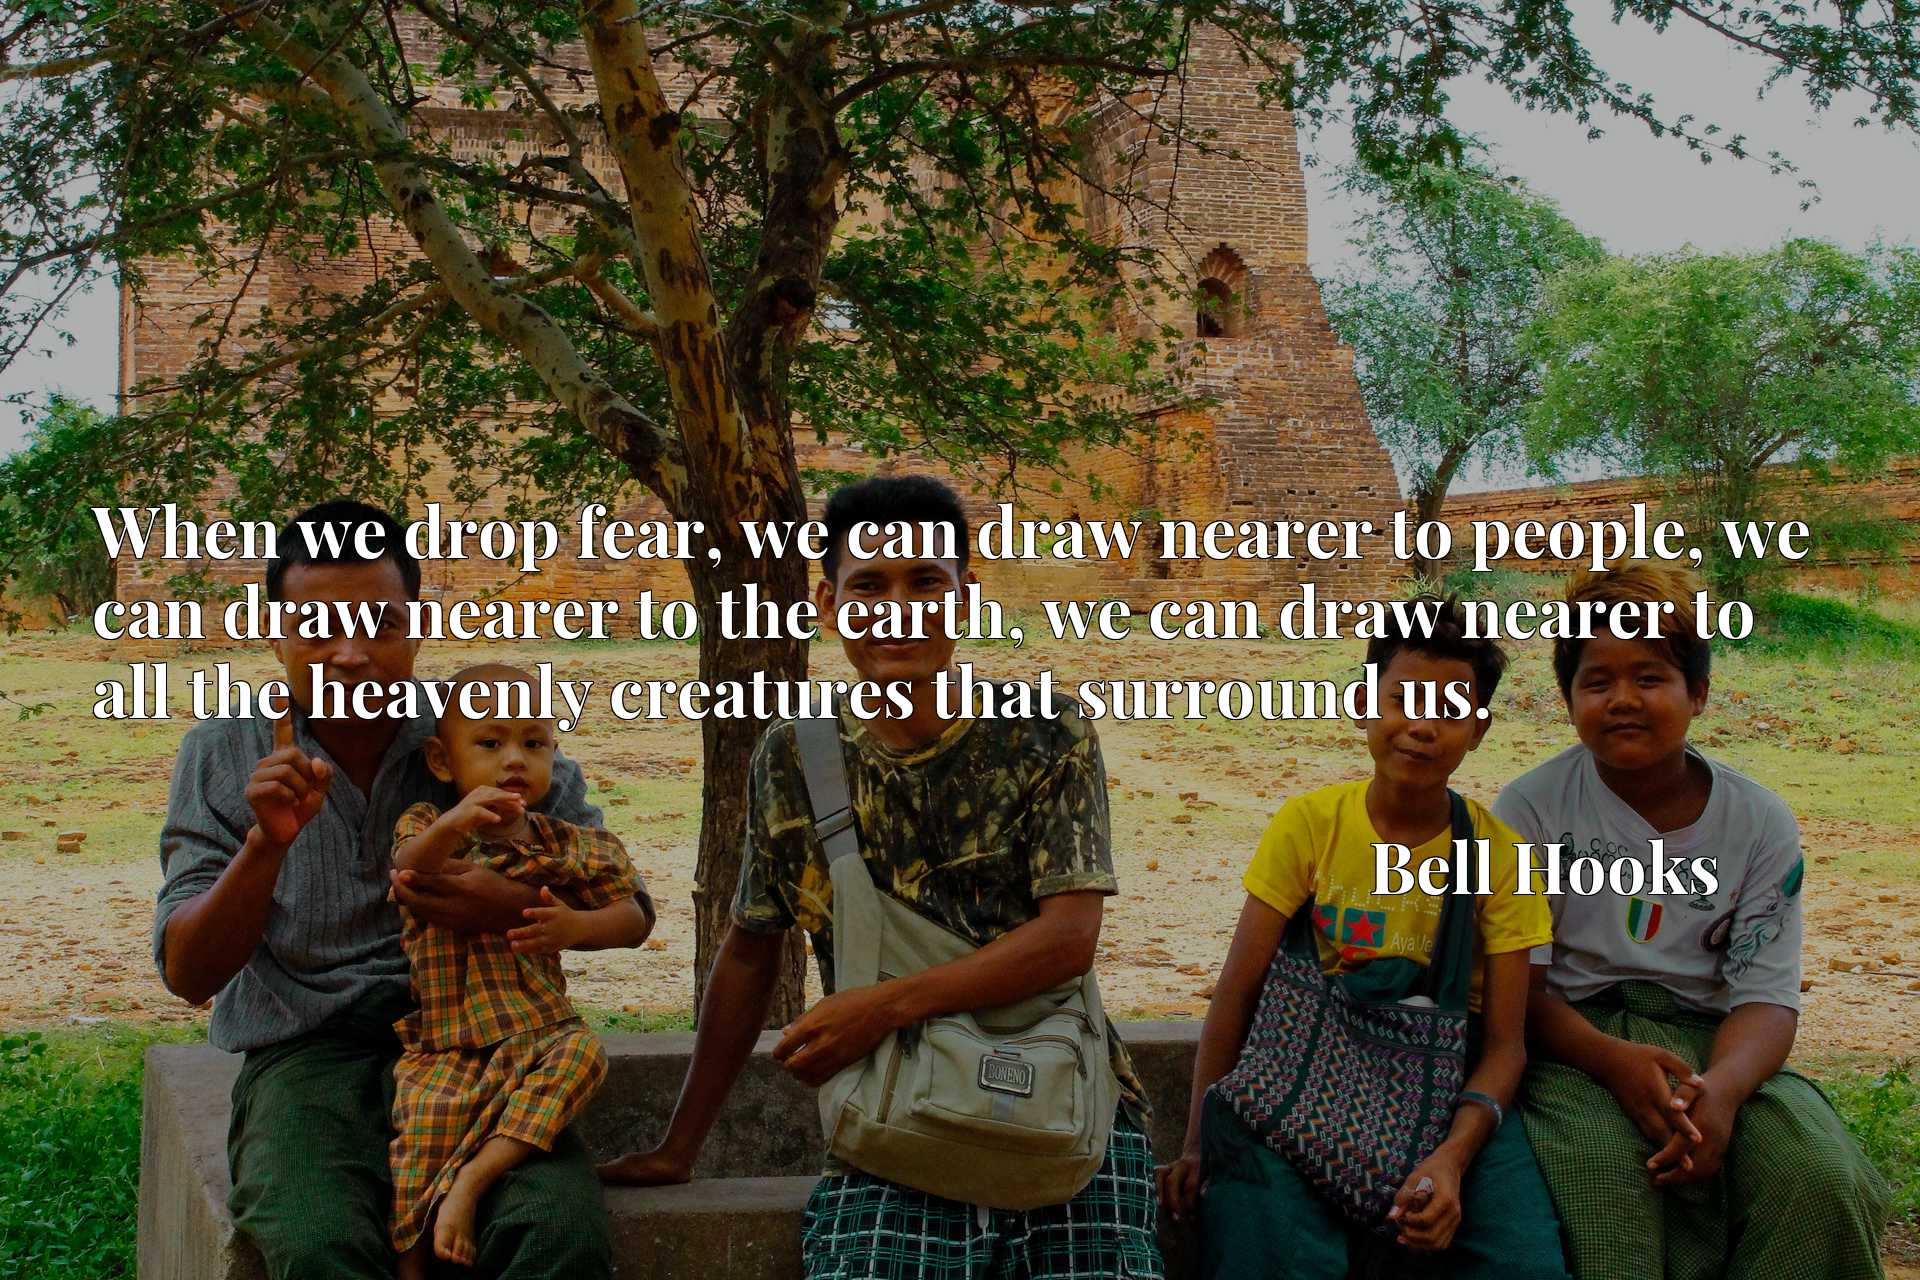 When we drop fear, we can draw nearer to people, we can draw nearer to the earth, we can draw nearer to all the heavenly creatures that surround us.